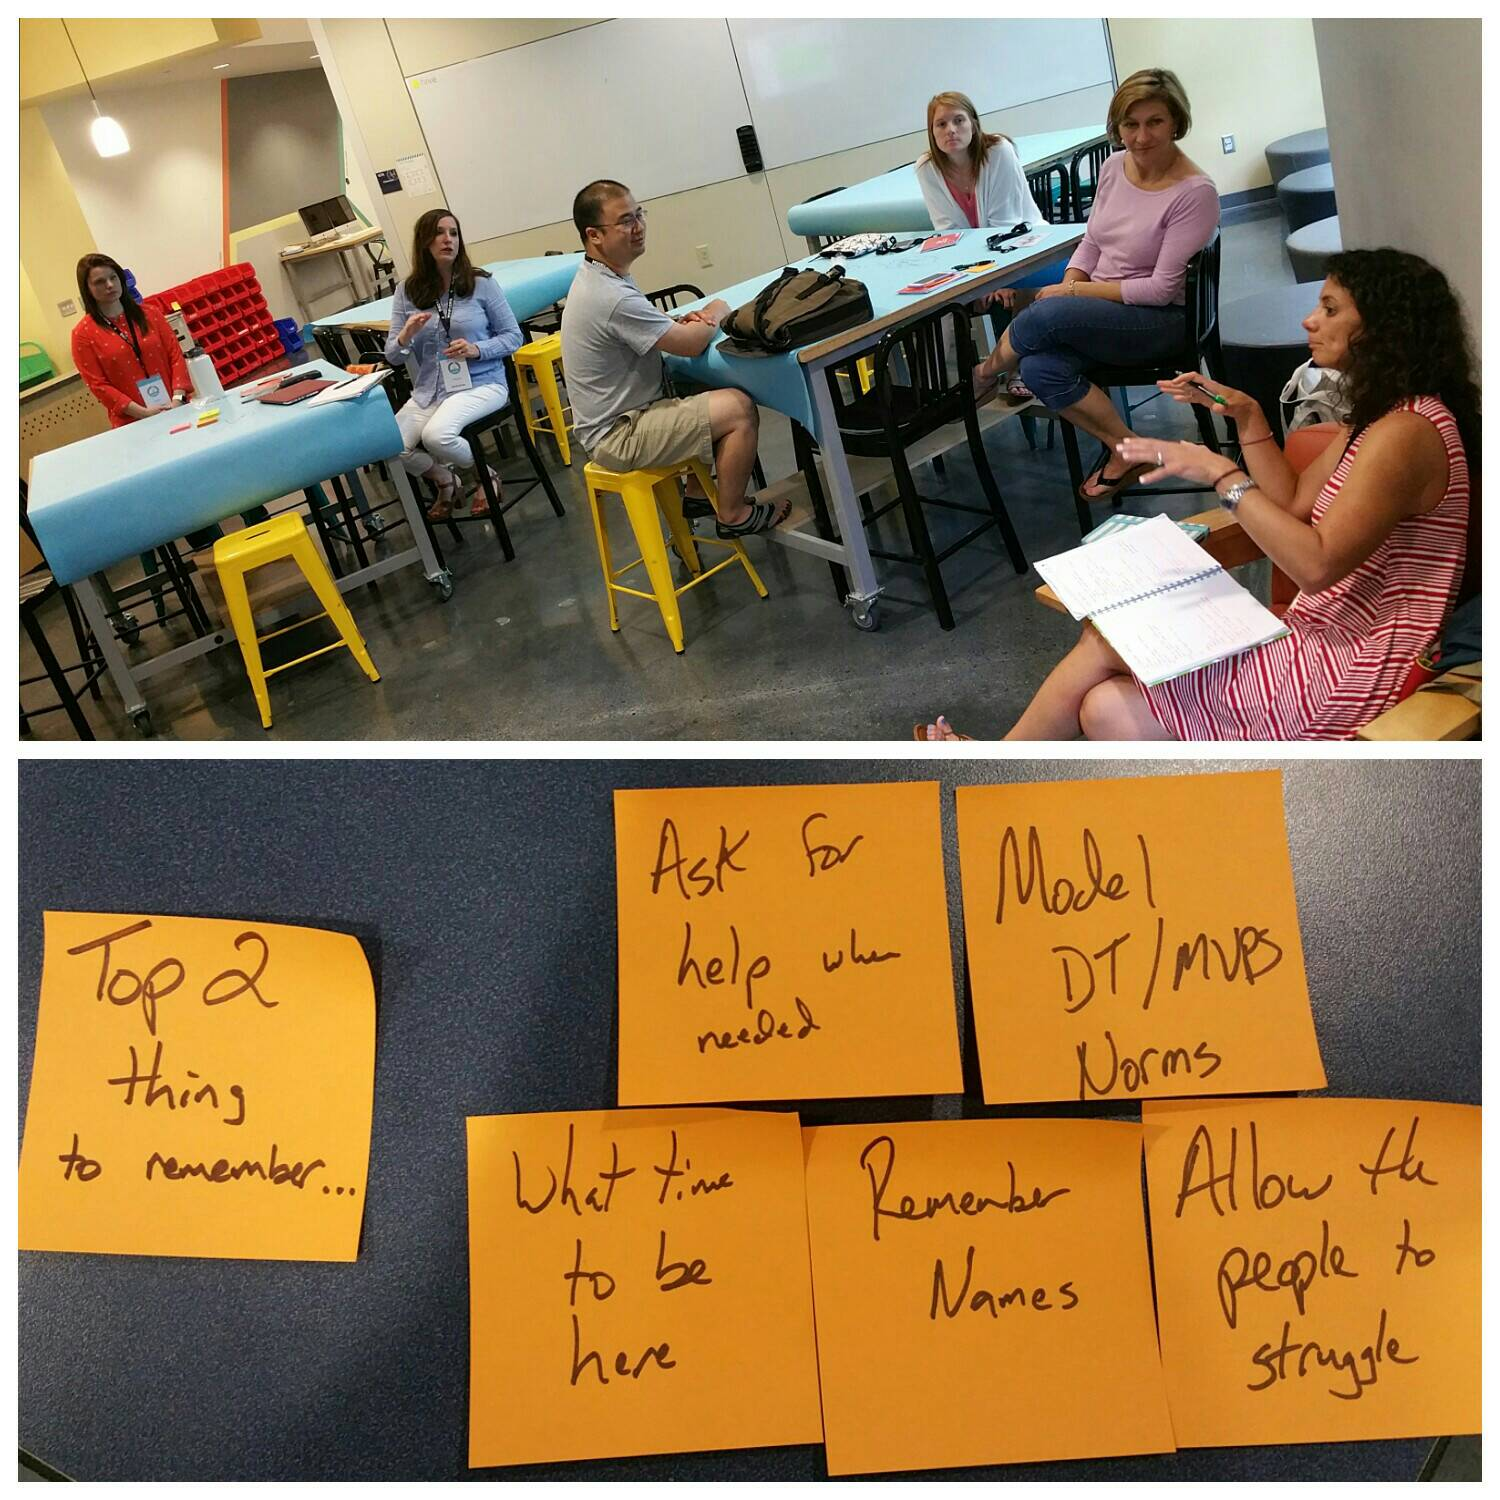 The #fuse17 Blue Base Coaching Team shares some Top Tips as they prepare for our designers' arrival tomorrow to begin working w/@Beds4Kids01 https://t.co/easyflPh5K